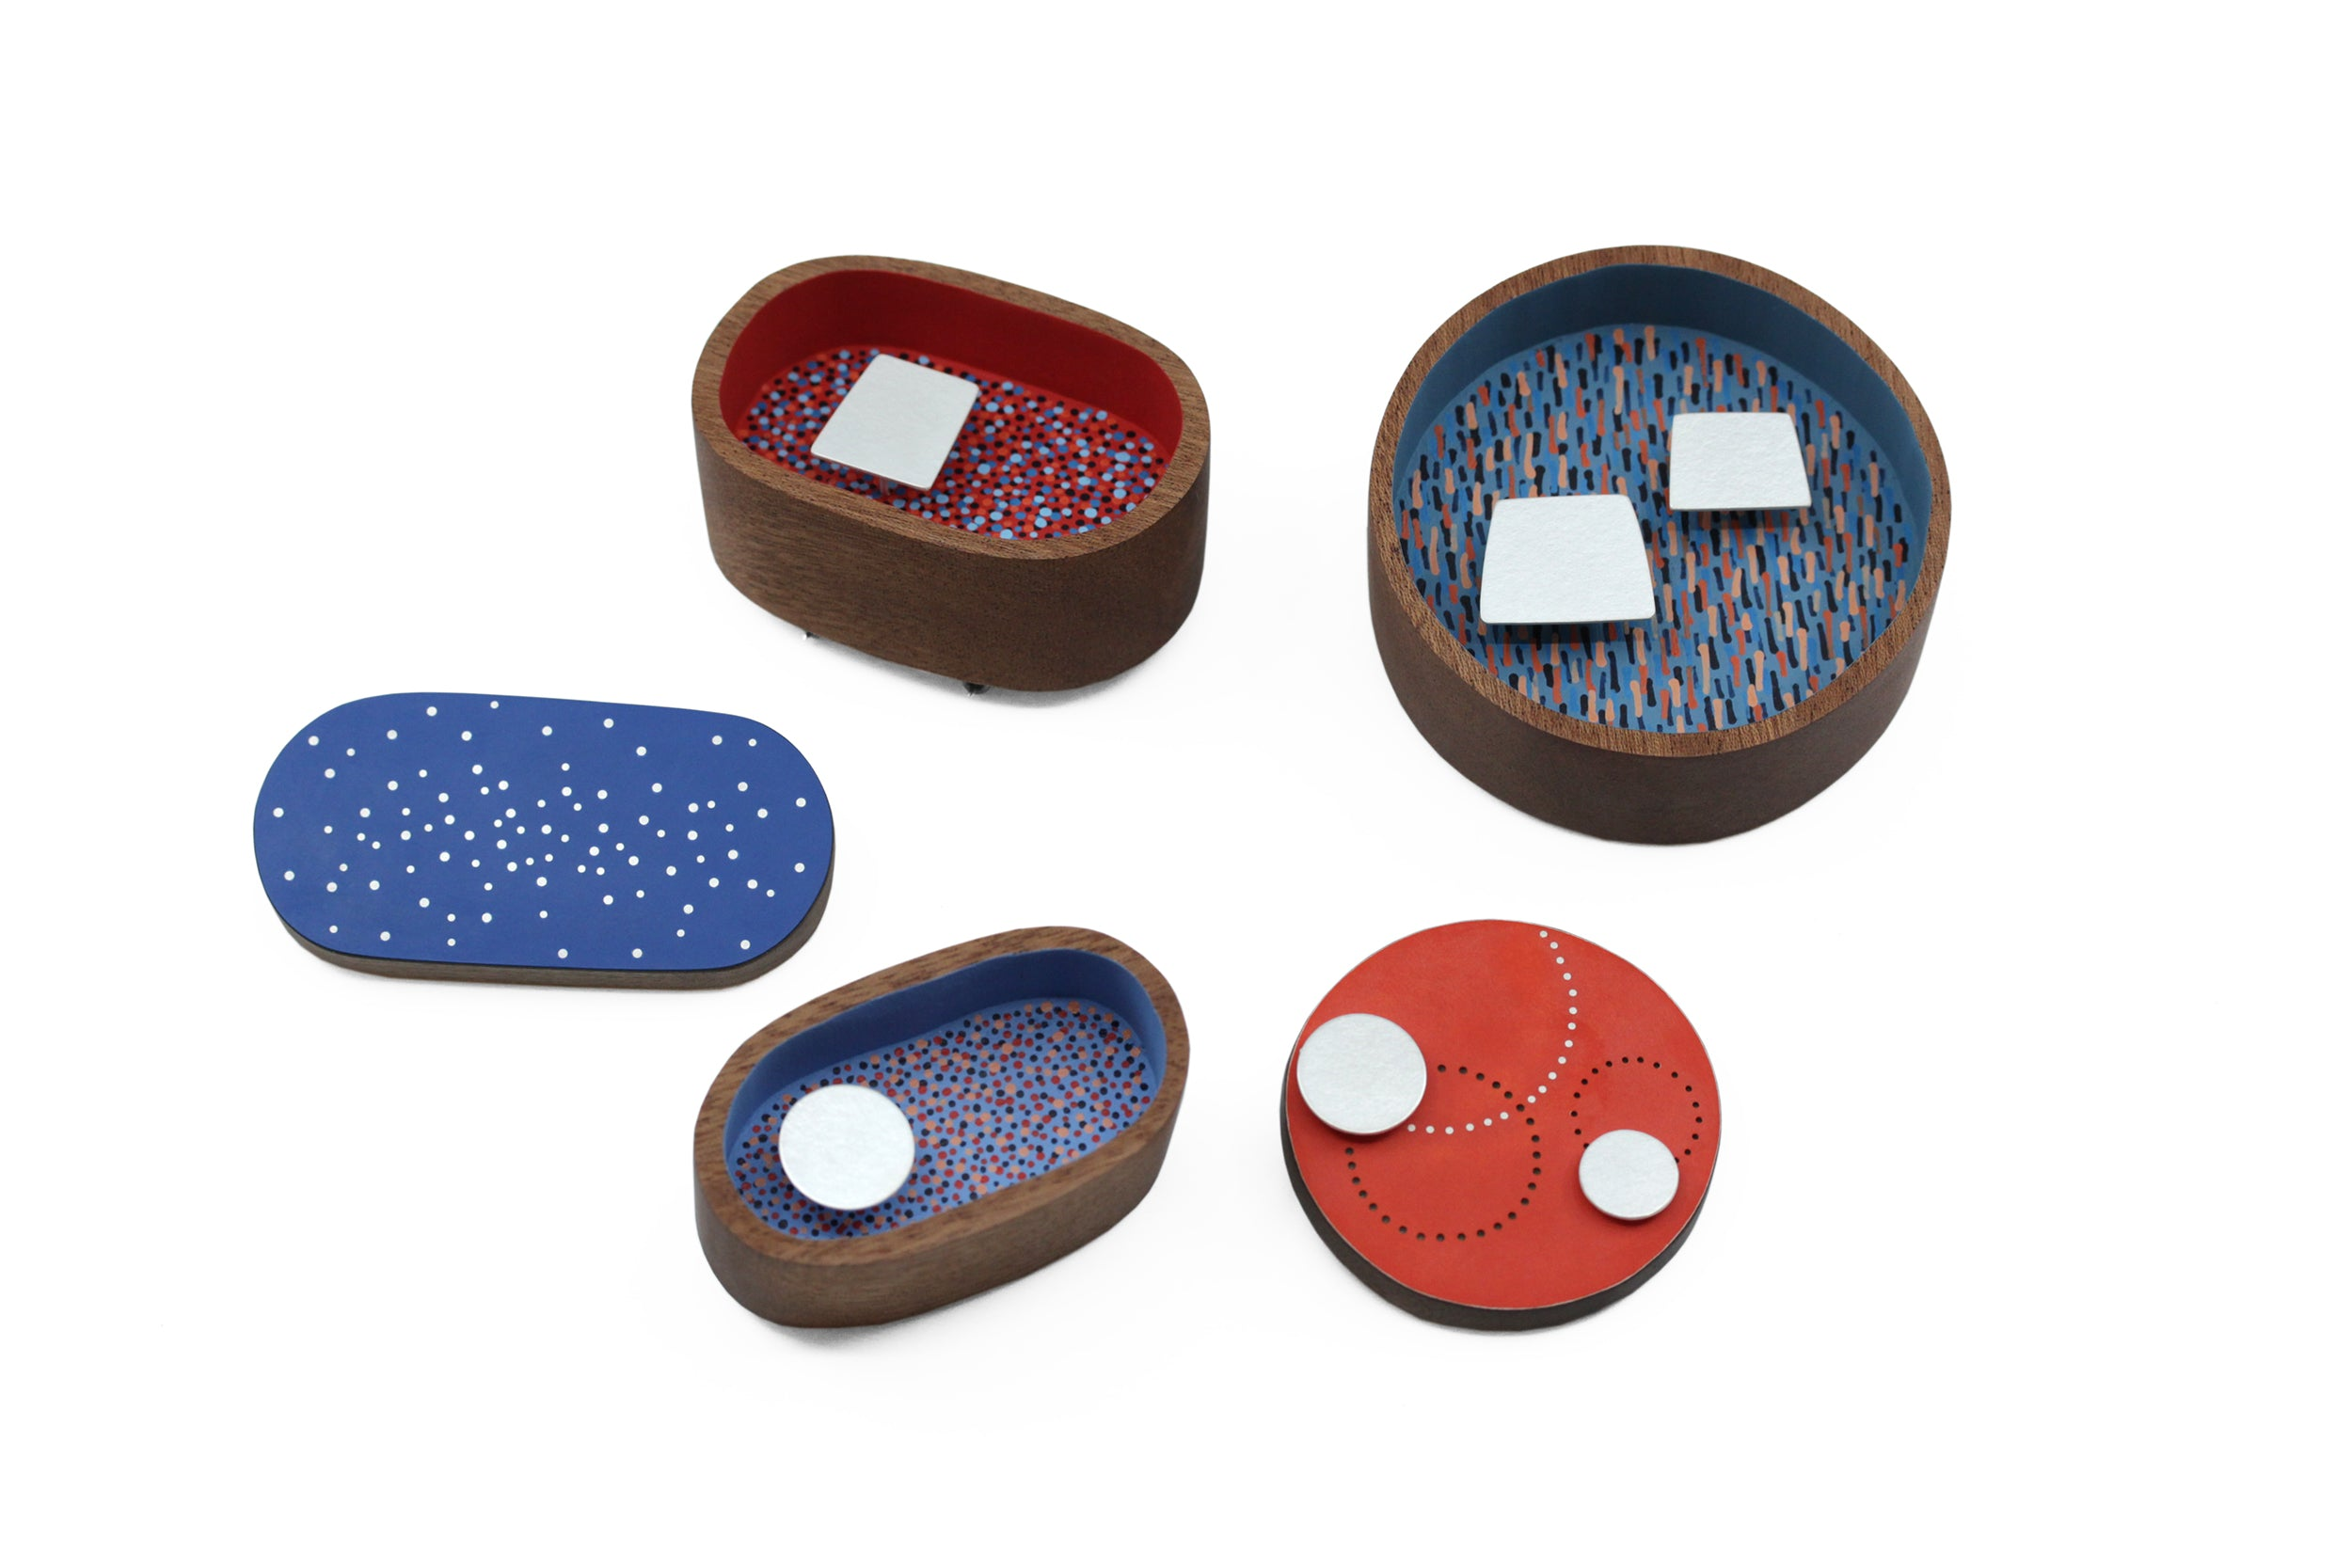 five brooches pictured together